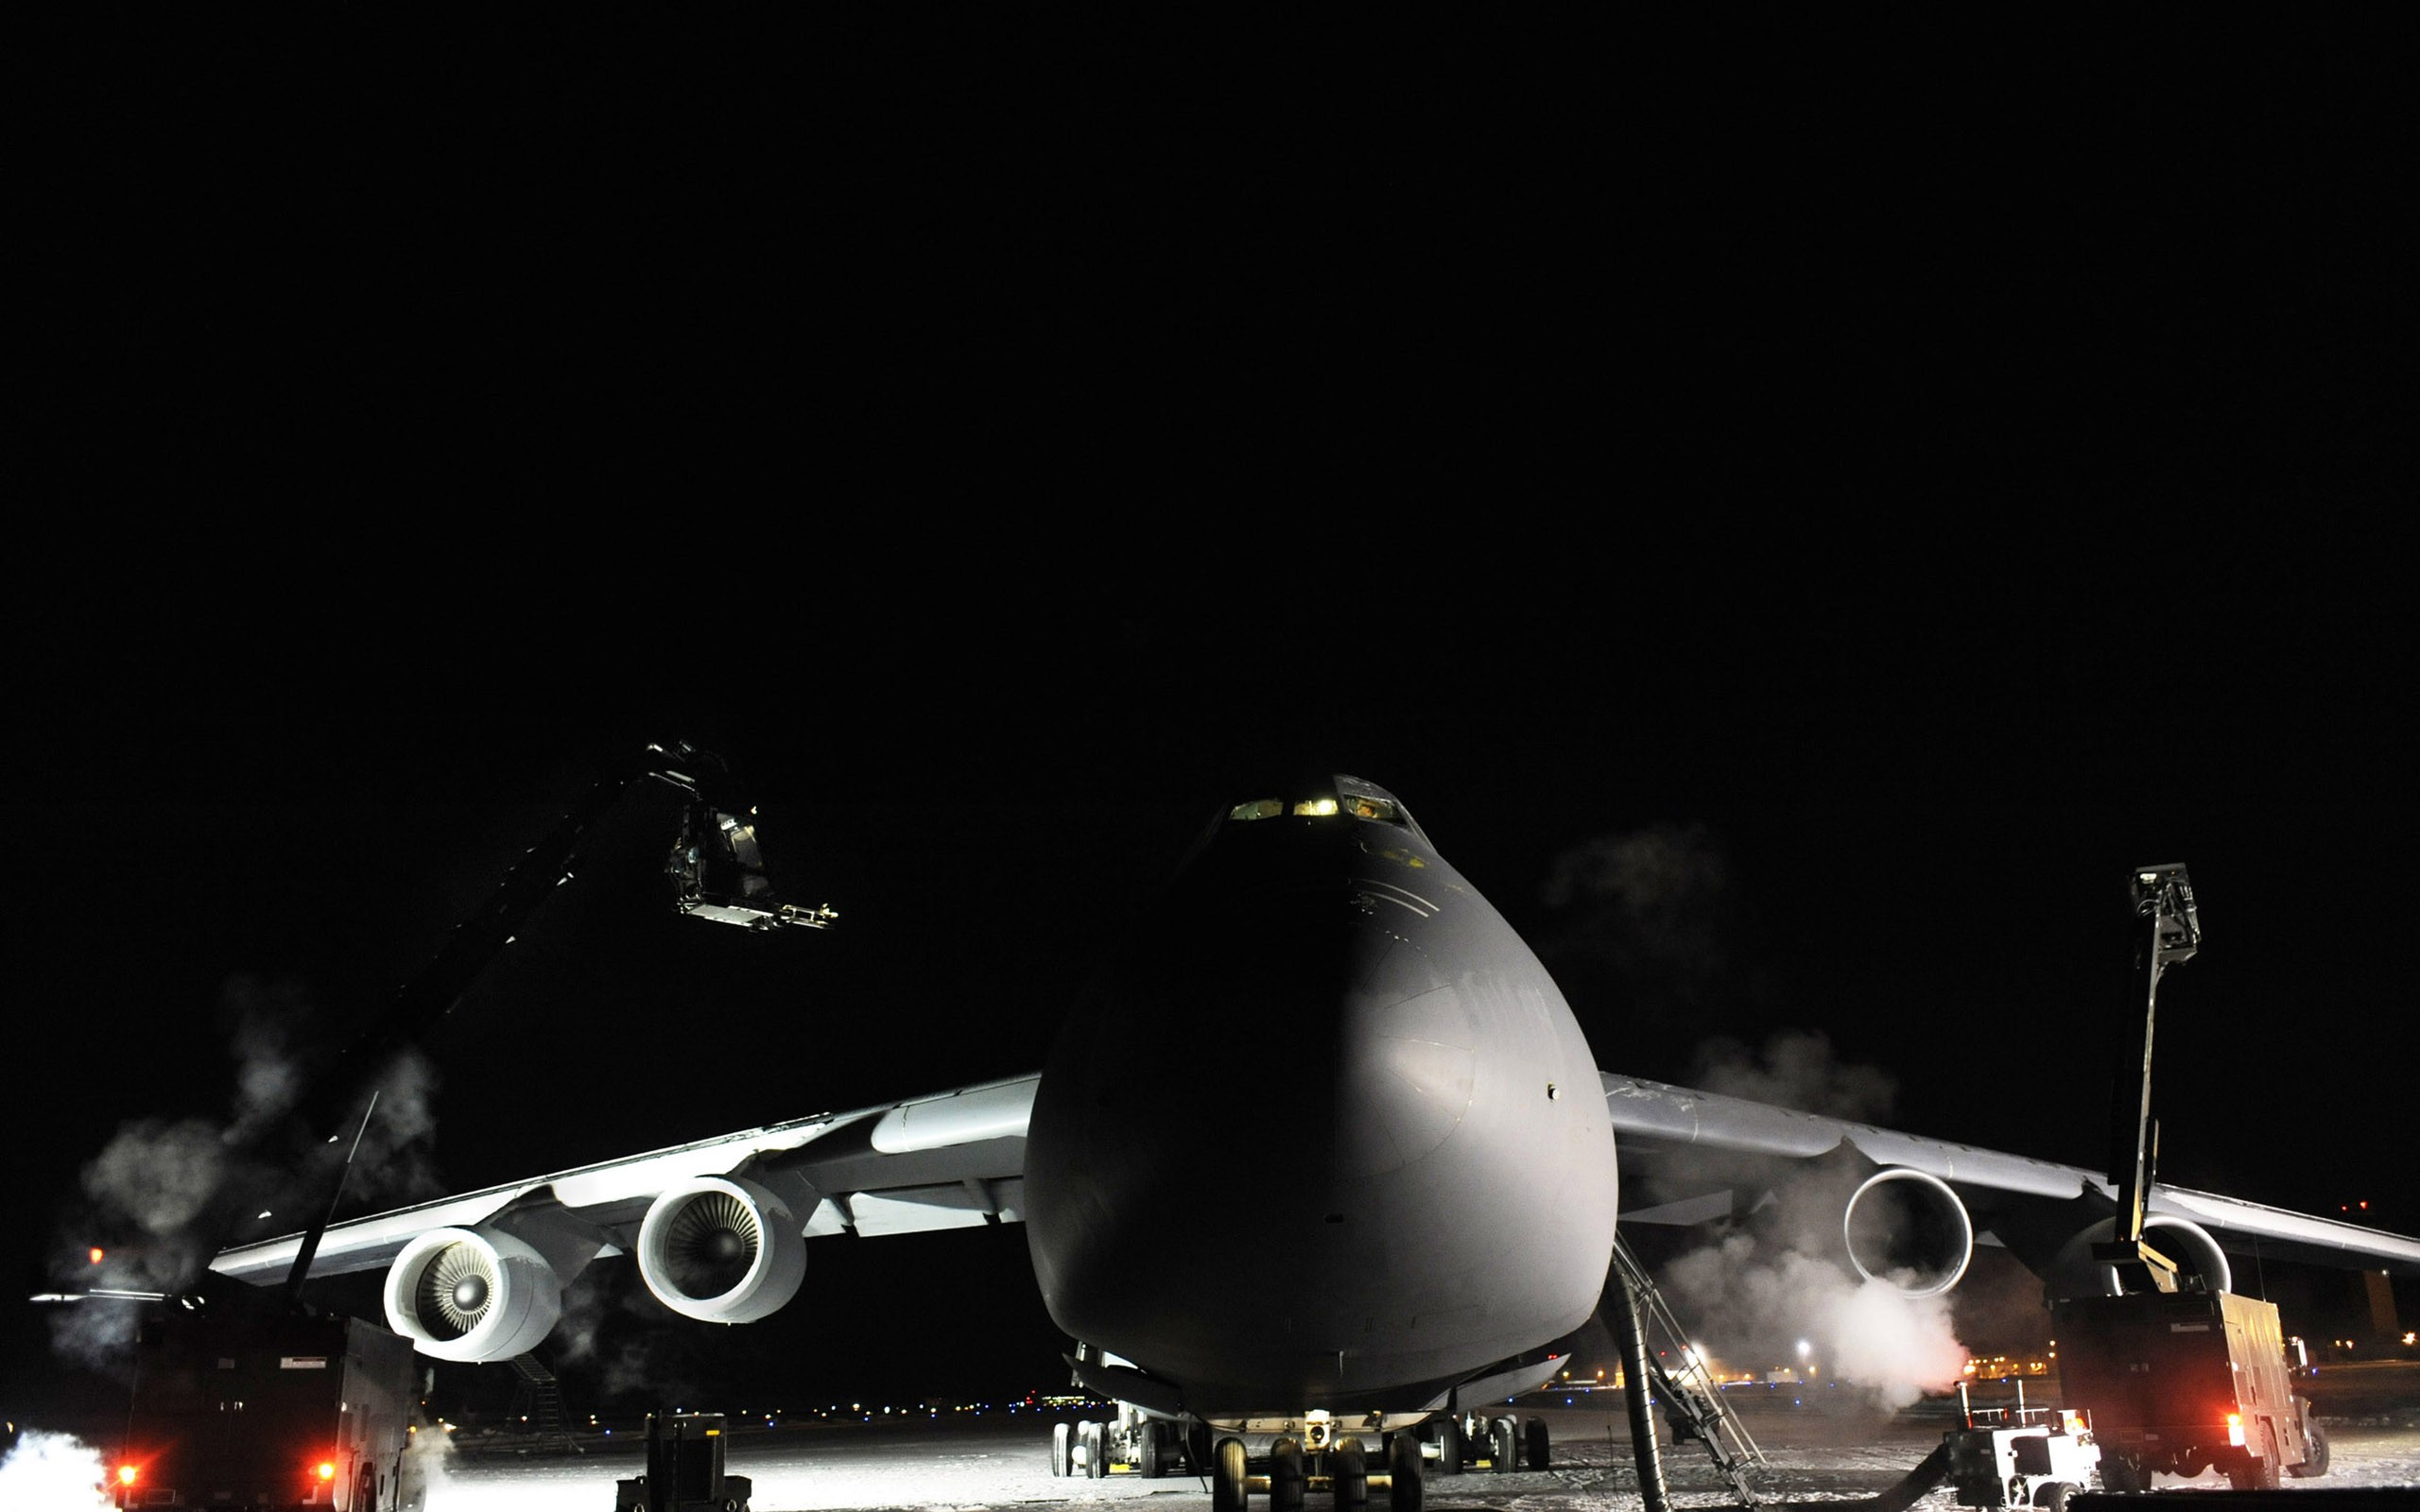 General 2560x1600 photography airplane aircraft military aircraft night military base US Air Force Lockheed C-5 Galaxy winter frost